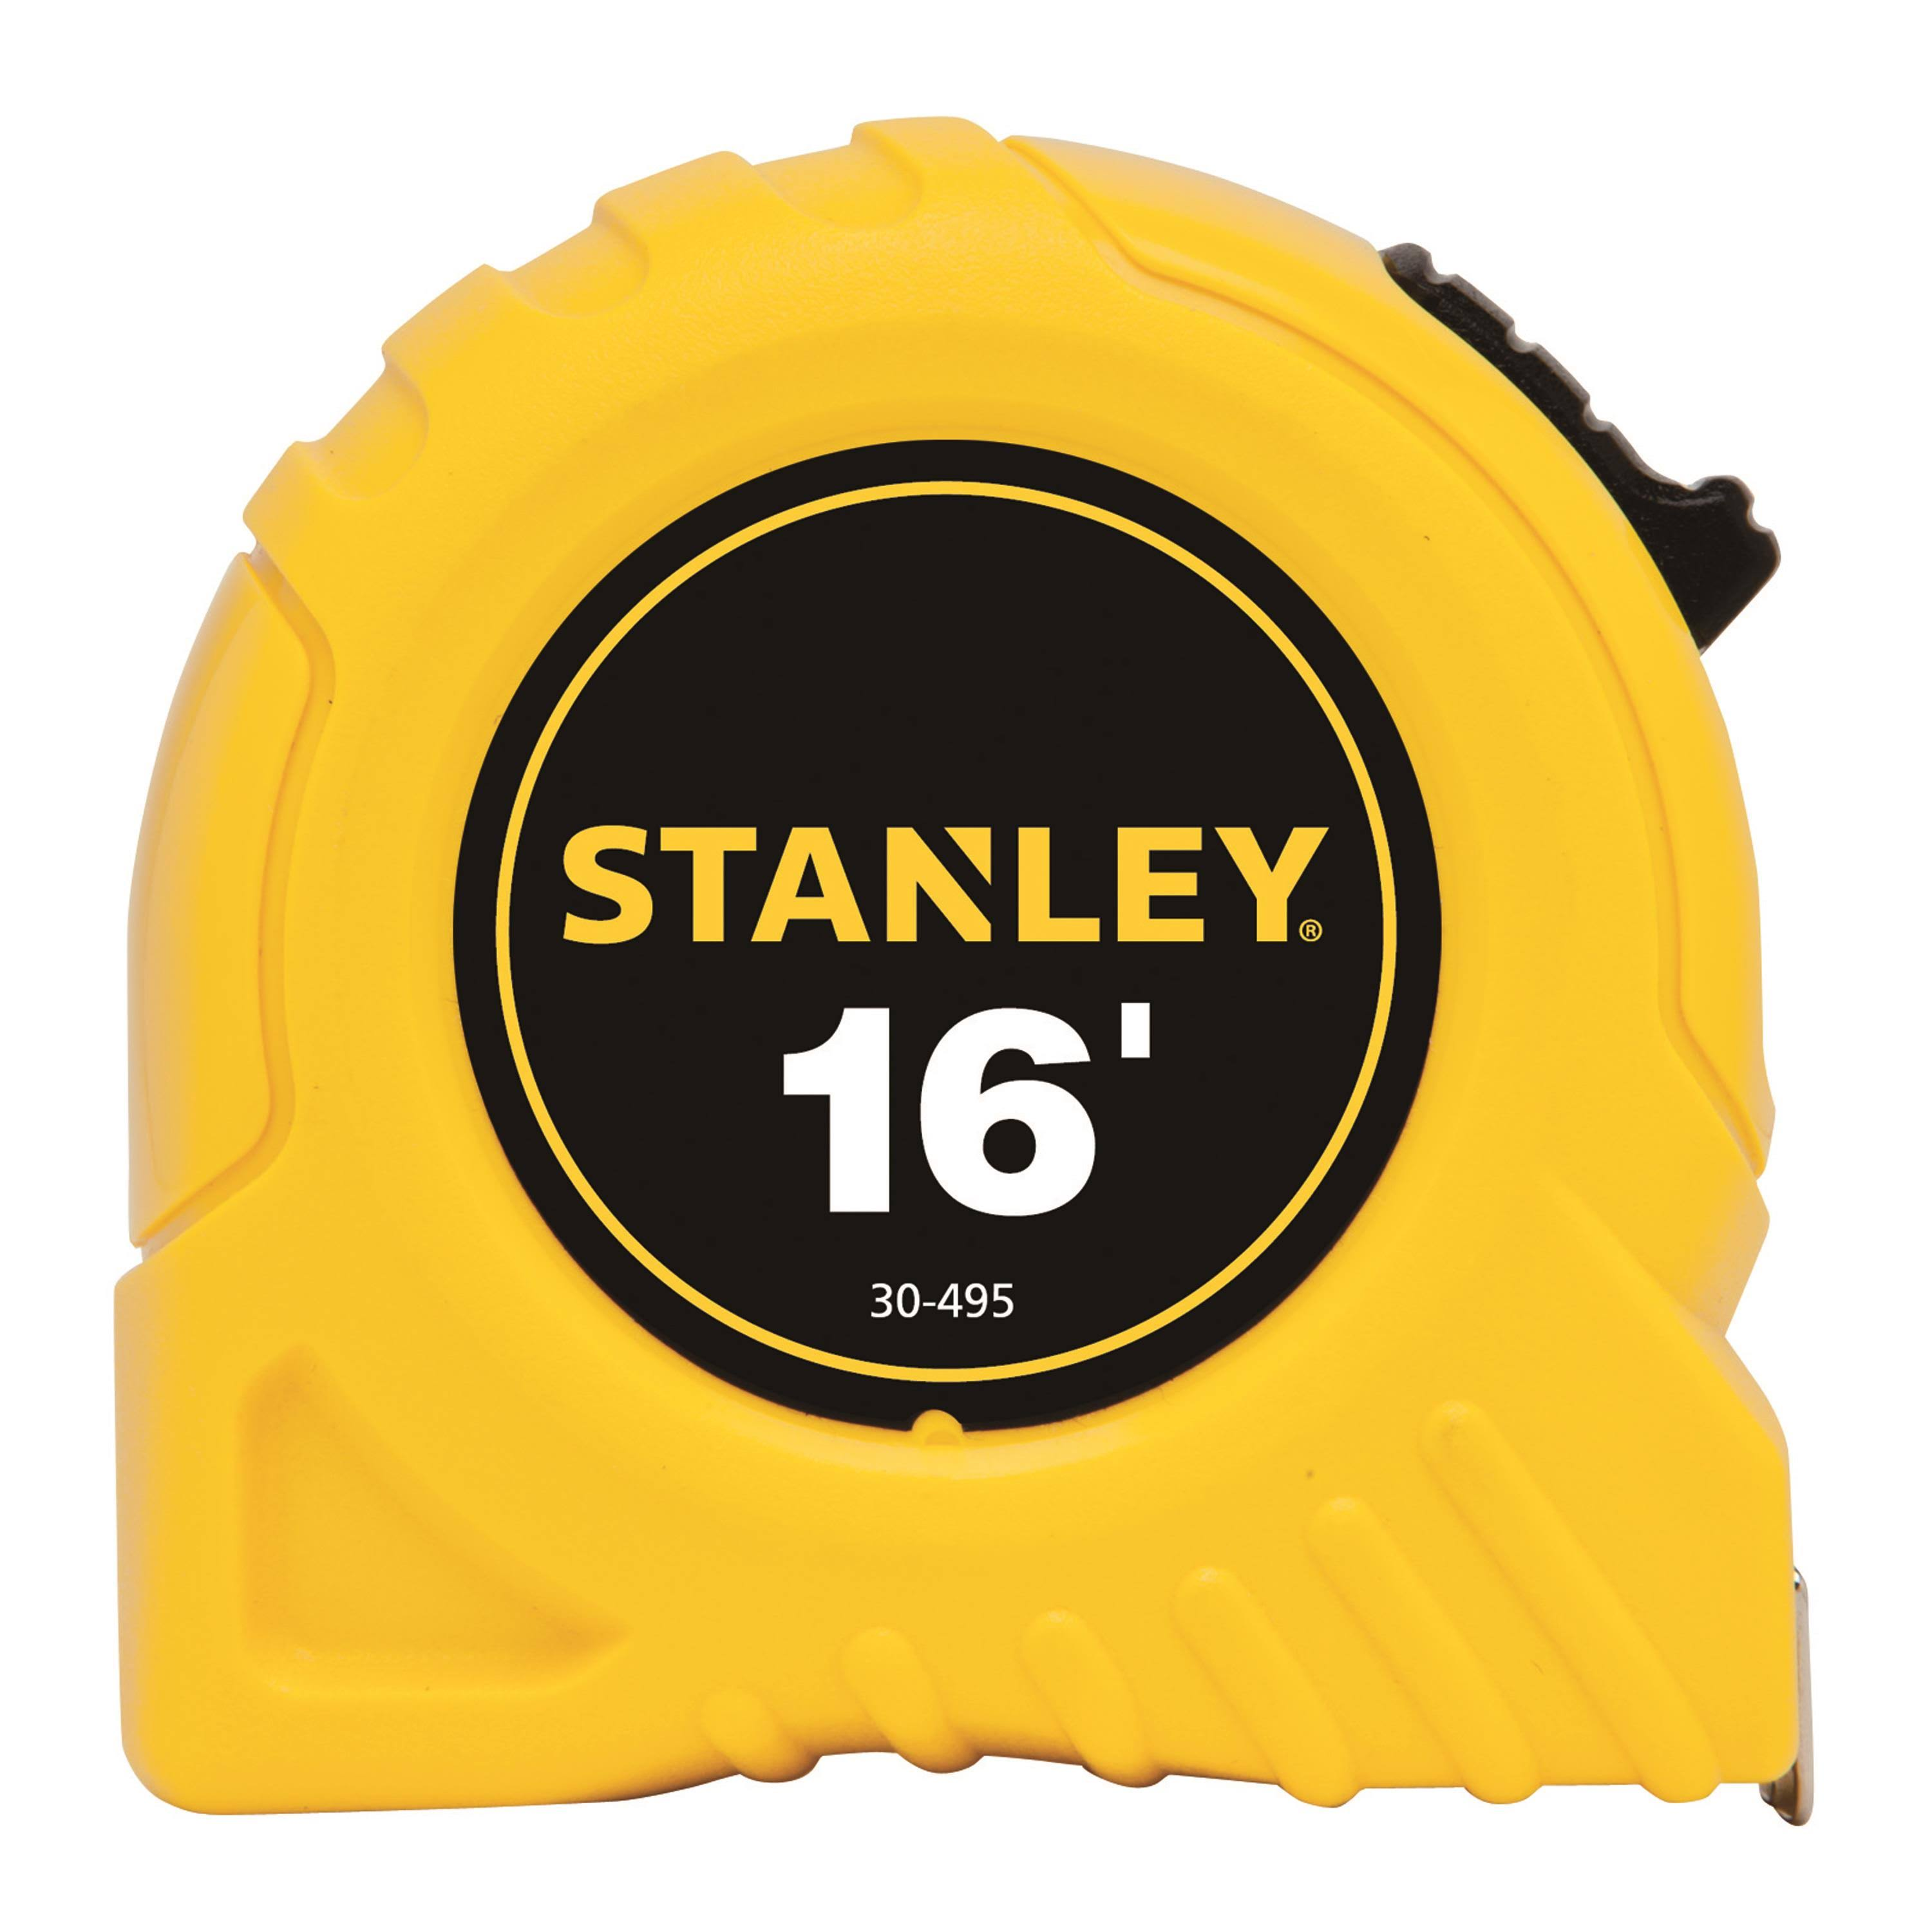 Stanley Tape Measure - 16' X 3/4""